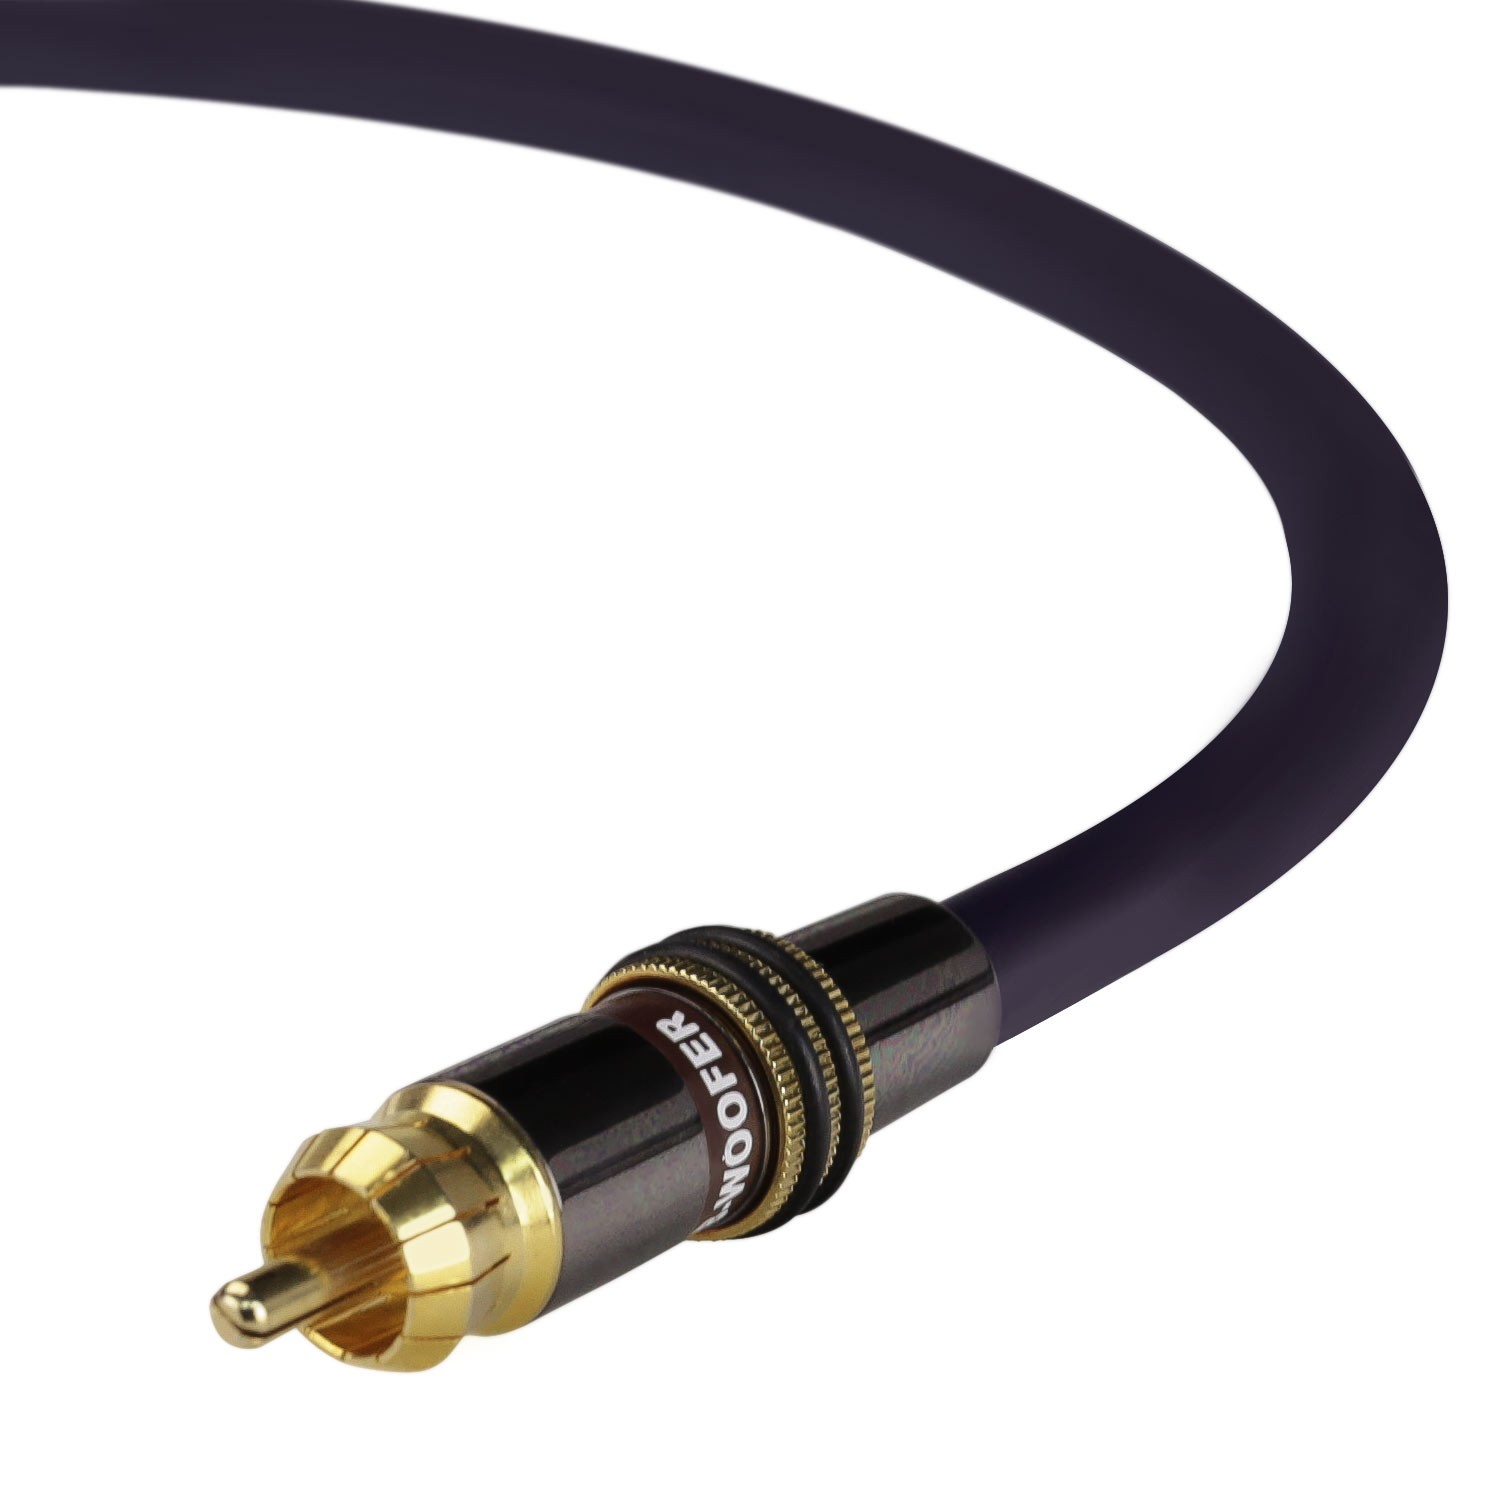 15 foot Subwoofer Cable Tartan Cable brand